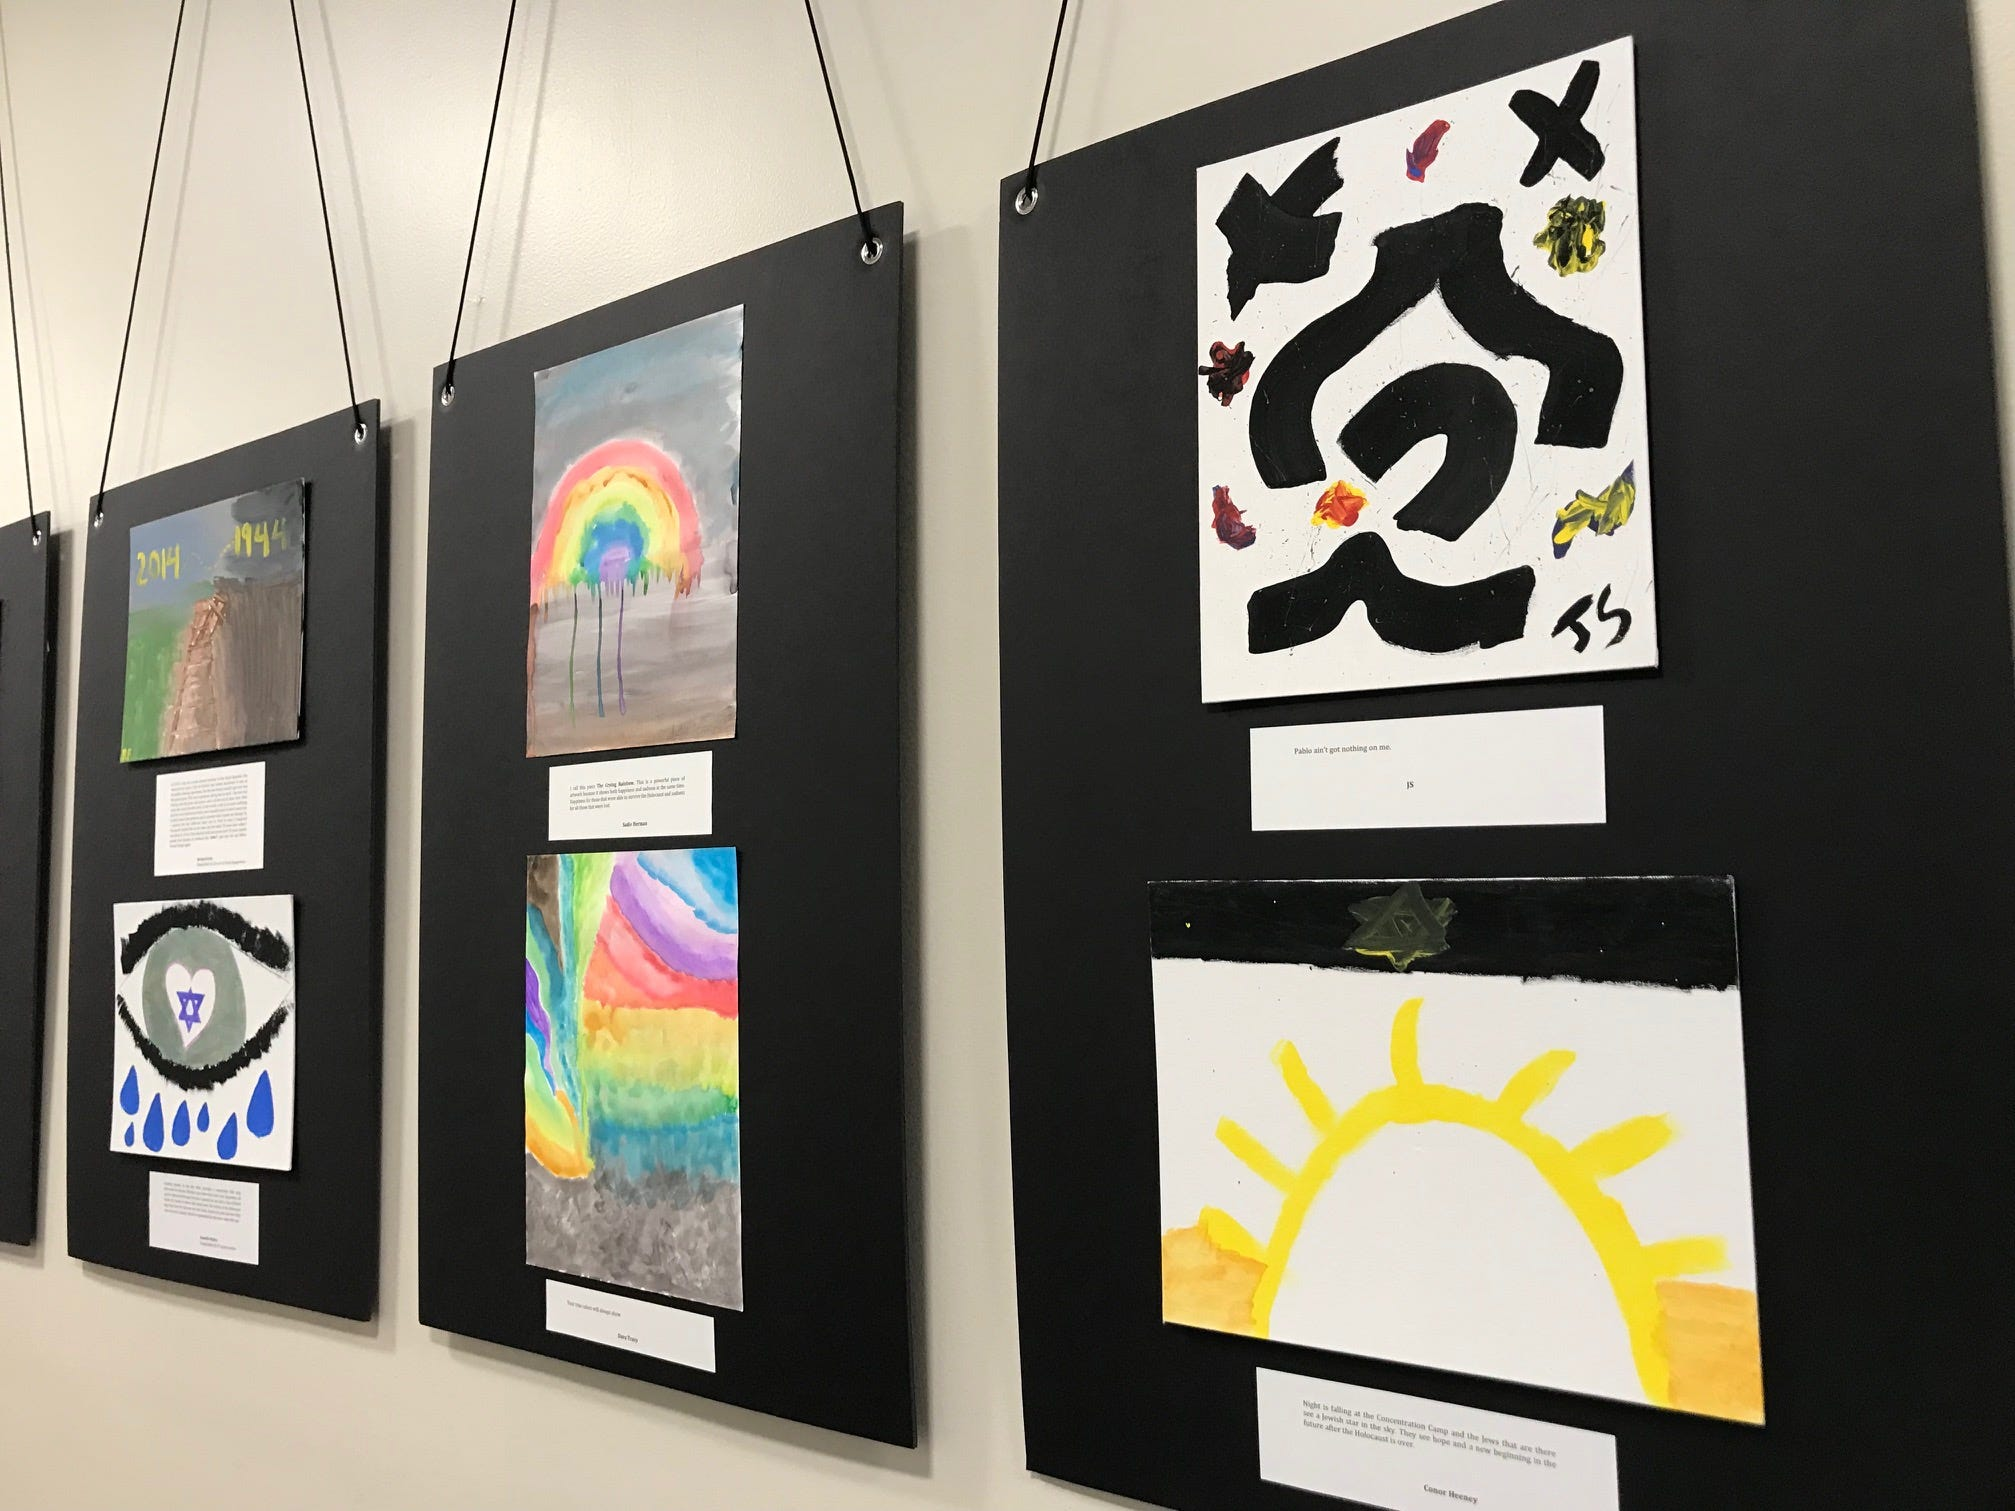 """The Shimon and Sara Birnbaum Jewish Community Center (JCC) Holocaust Memorial and Education Center held a Creative Arts Festival Open House entitled Voices of our Descendants through Story, Art and Film on Sunday, April 14. """"The Light from the Yellow Star"""" exhibit displayed Holocaust-related student artwork in the JCC main lobby. More than 75 local religious school students participated in the project."""